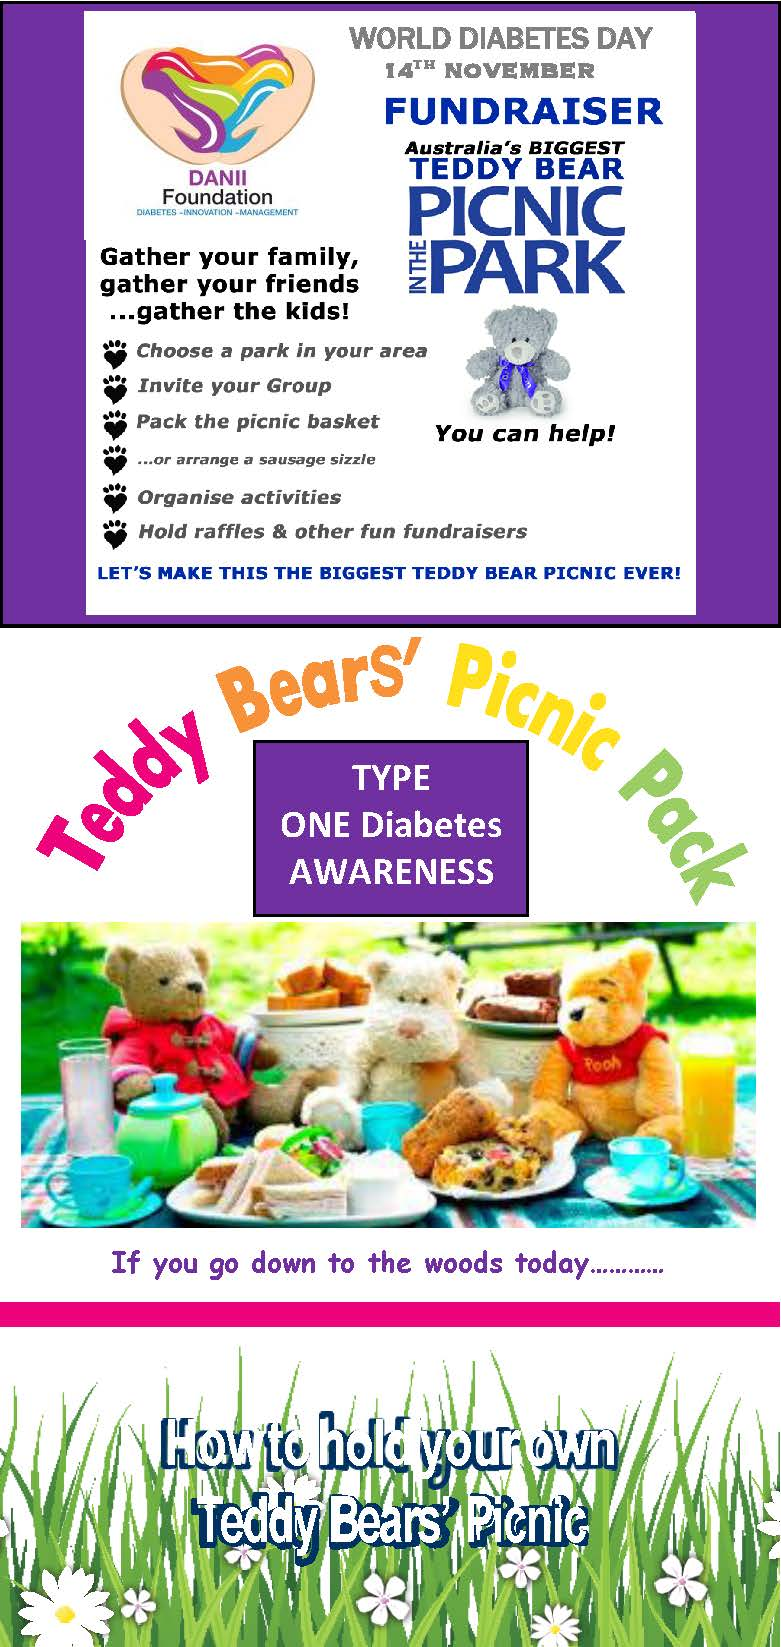 WORLD-DIABETESDAY_Teddy Bears Picnic-Picnic-Pack-Support-DANII_Page_1